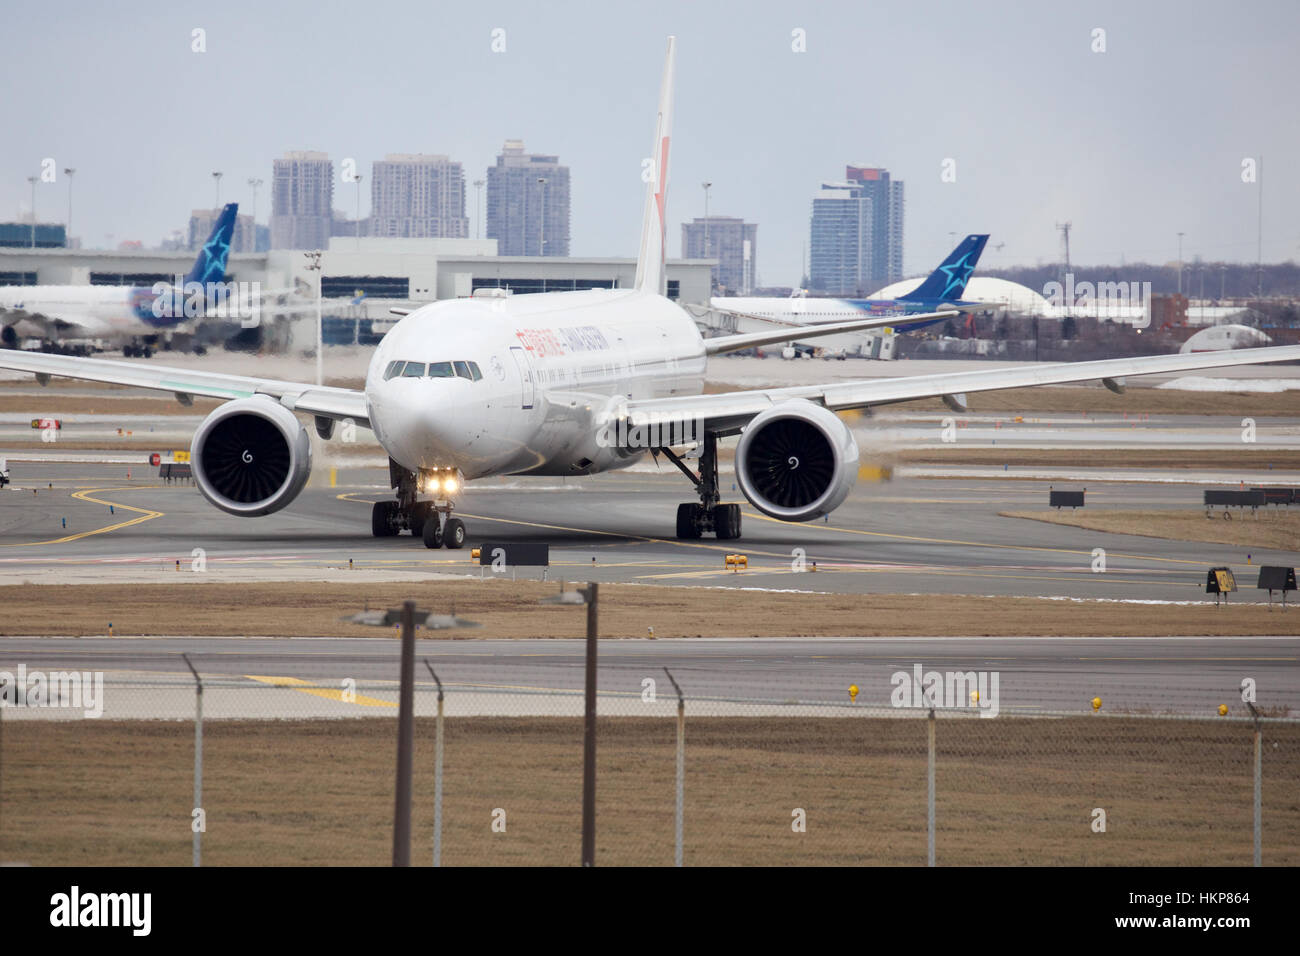 China Eastern Airline Boeing 777 Taxiing to Runway 23L at Toronto Pearson Airport - Stock Image